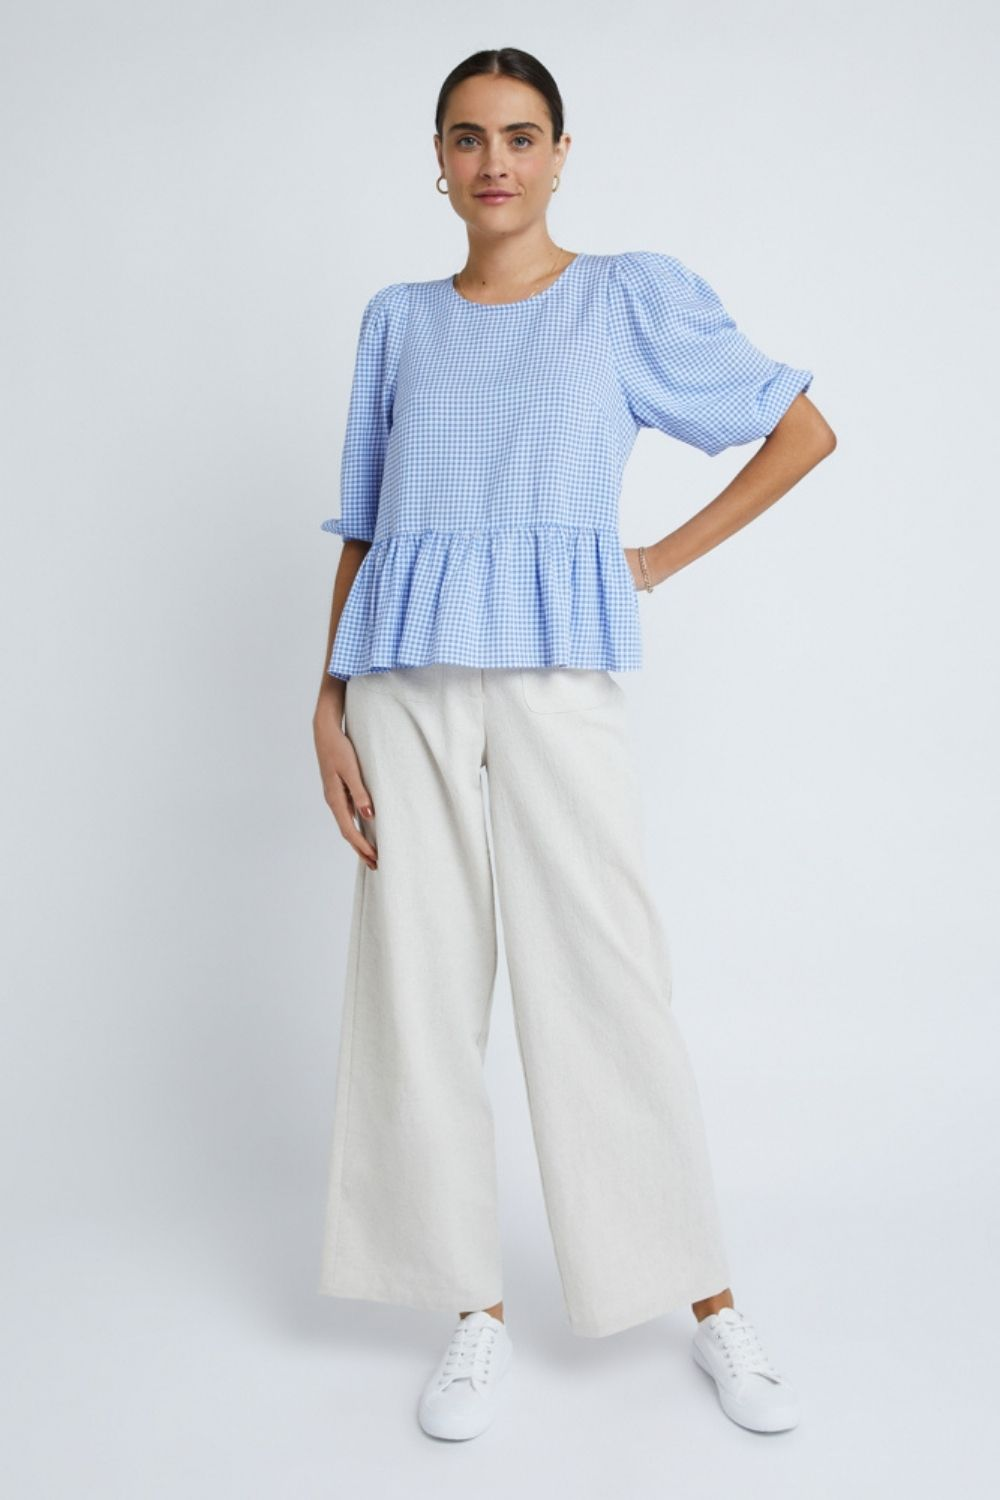 Staple The Label Gabriella Blouse